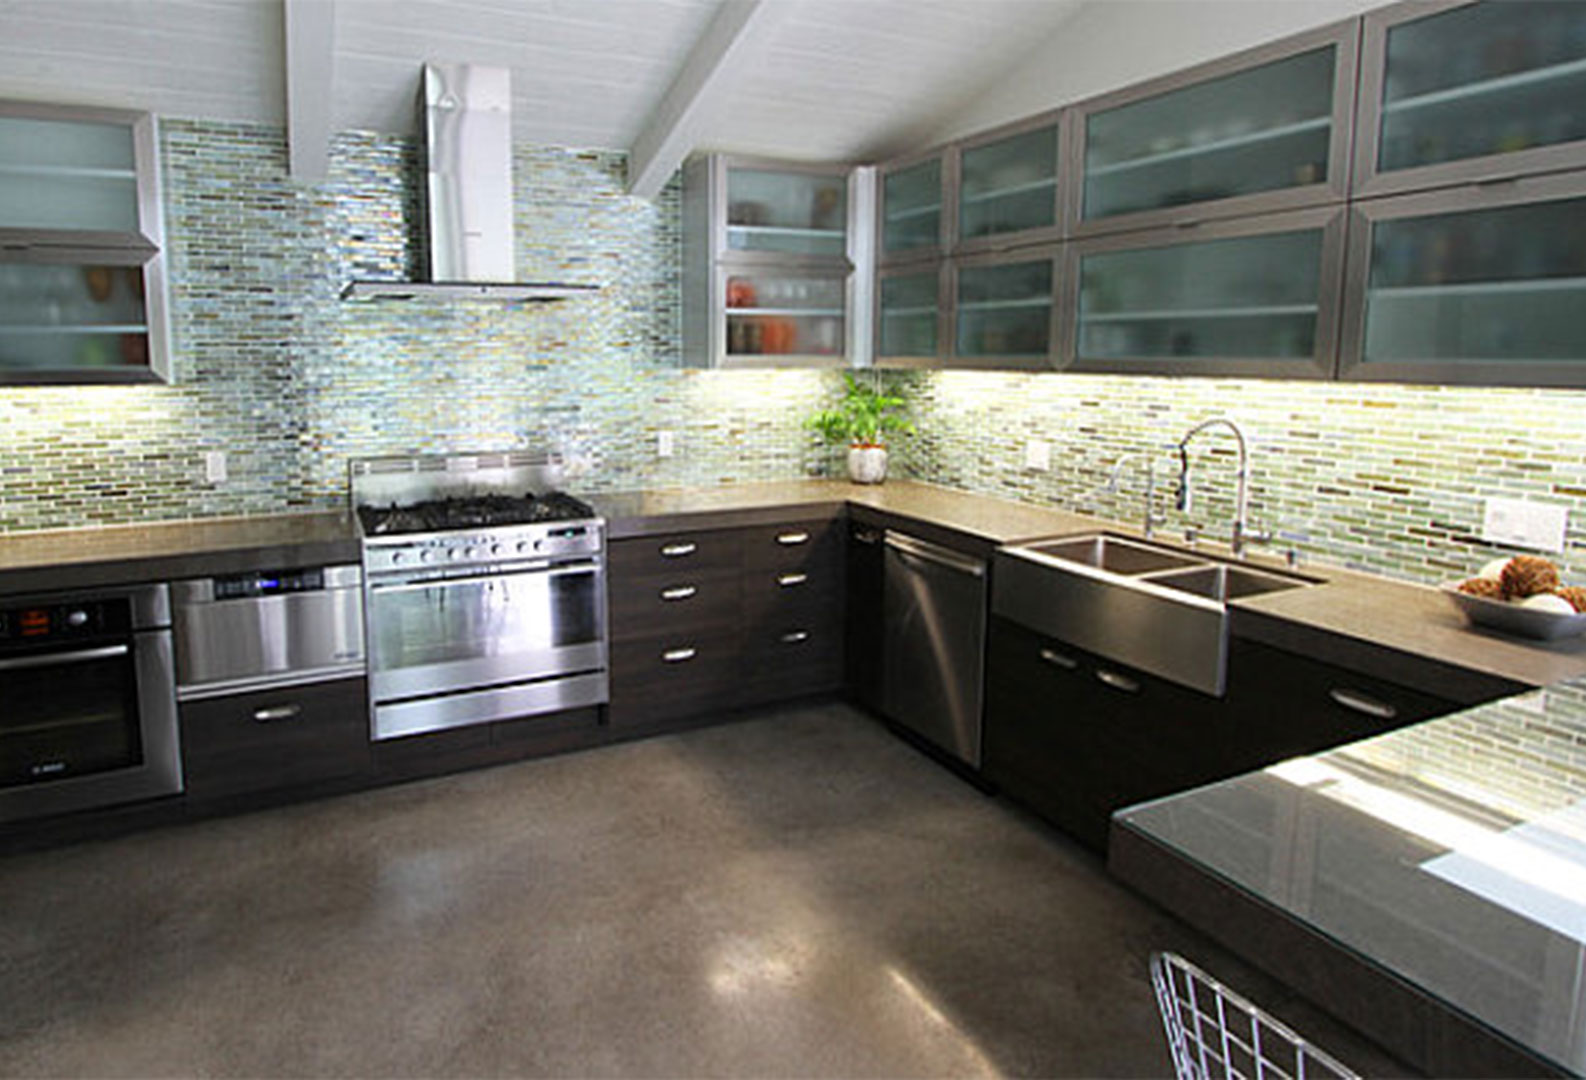 Top 15 stunning kitchen design ideas and their costs diy for 150 best new kitchen ideas